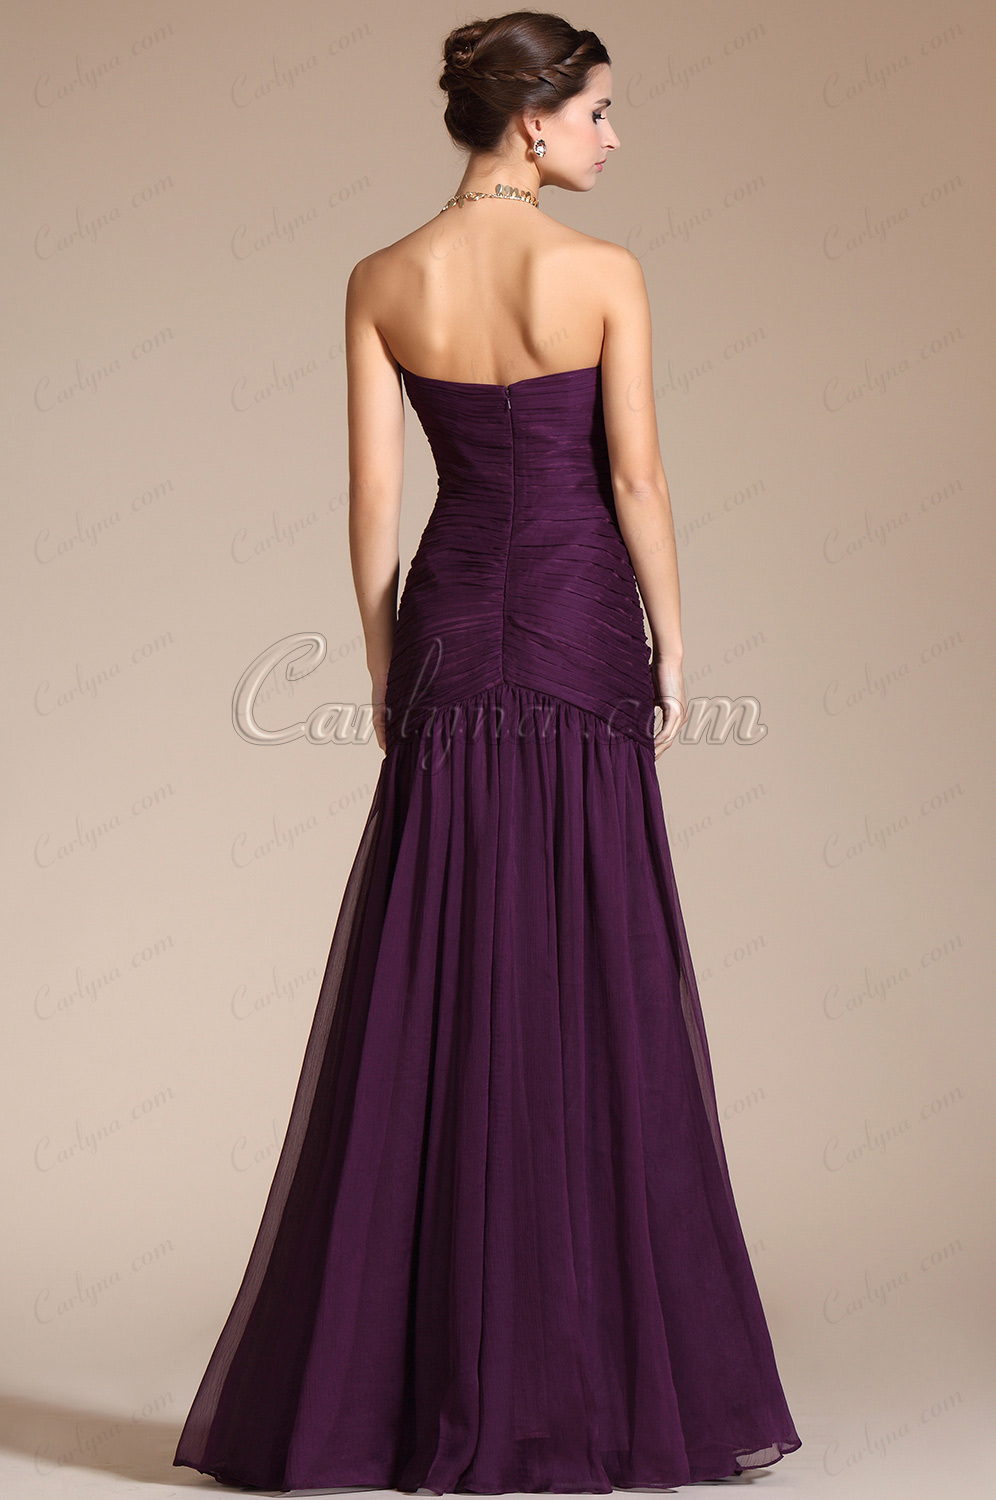 Online shop carlyna 2014 new graceful purple kim kardashian online shop carlyna 2014 new graceful purple kim kardashian bridesmaid dress robe de soiree c00094706 aliexpress mobile ombrellifo Image collections